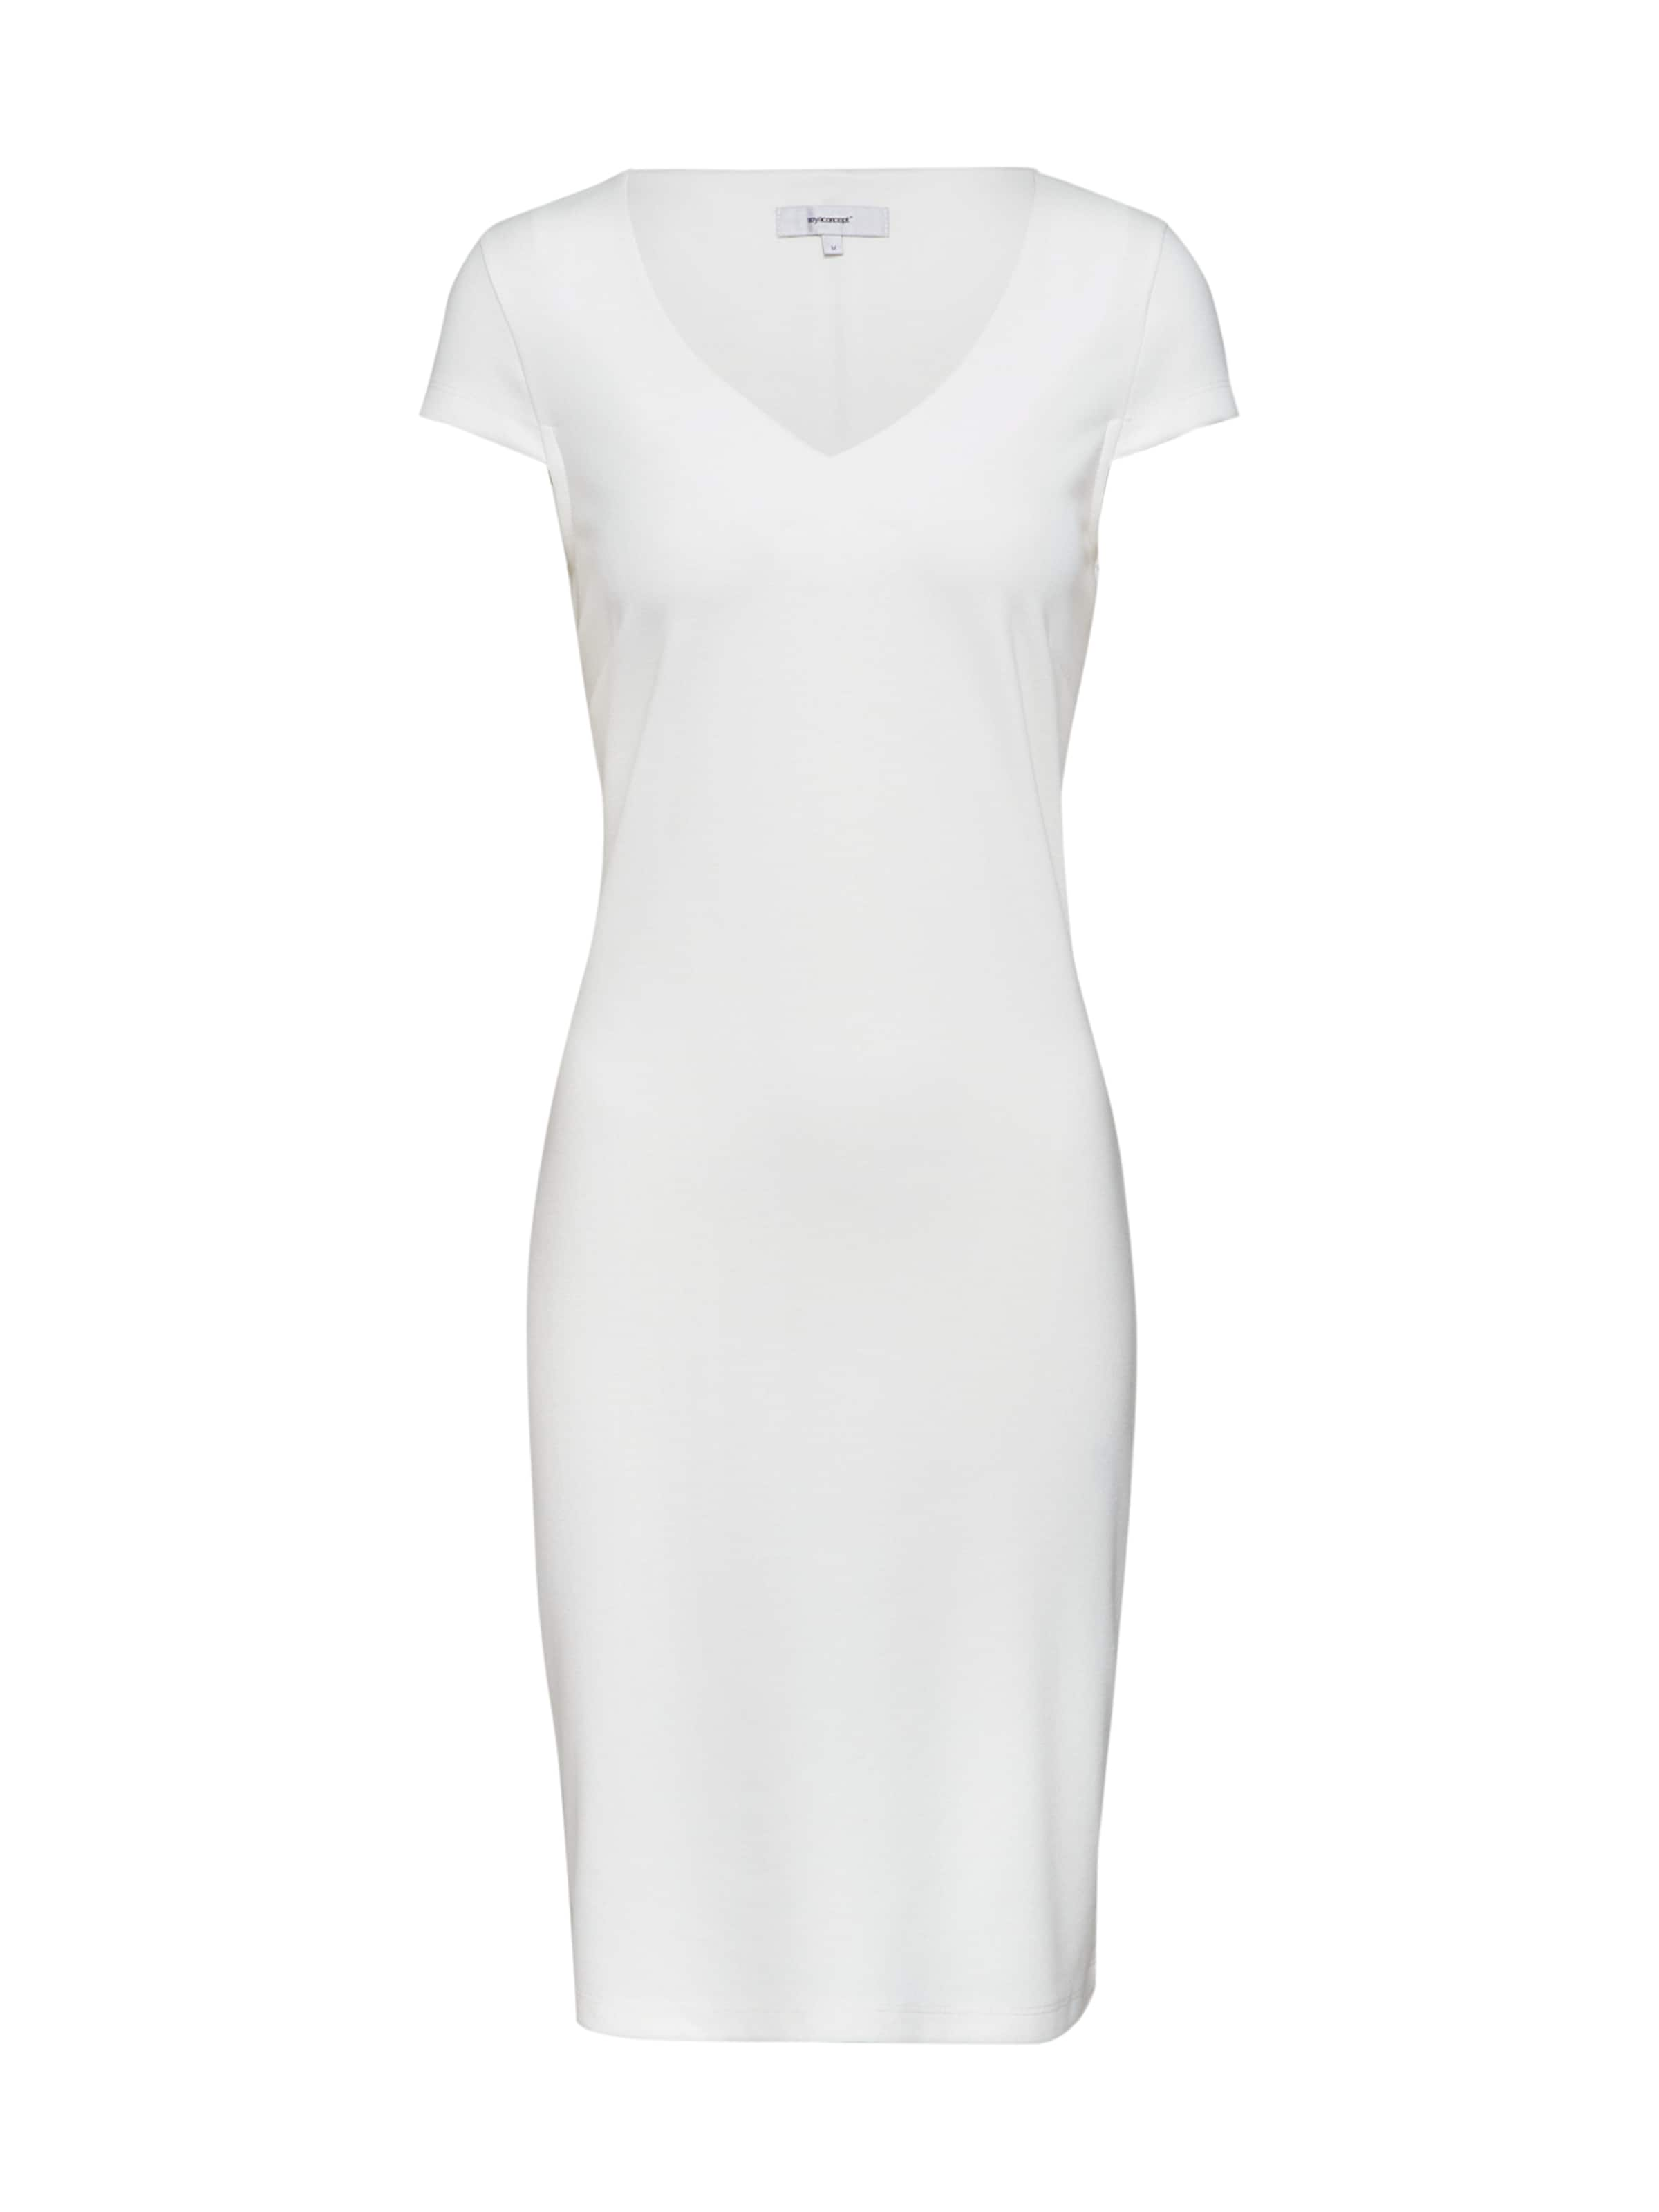 Soyaconcept In Soyaconcept Offwhite Kleid In 'dena' Soyaconcept 'dena' Kleid In Kleid Offwhite 'dena' 80mONnvw